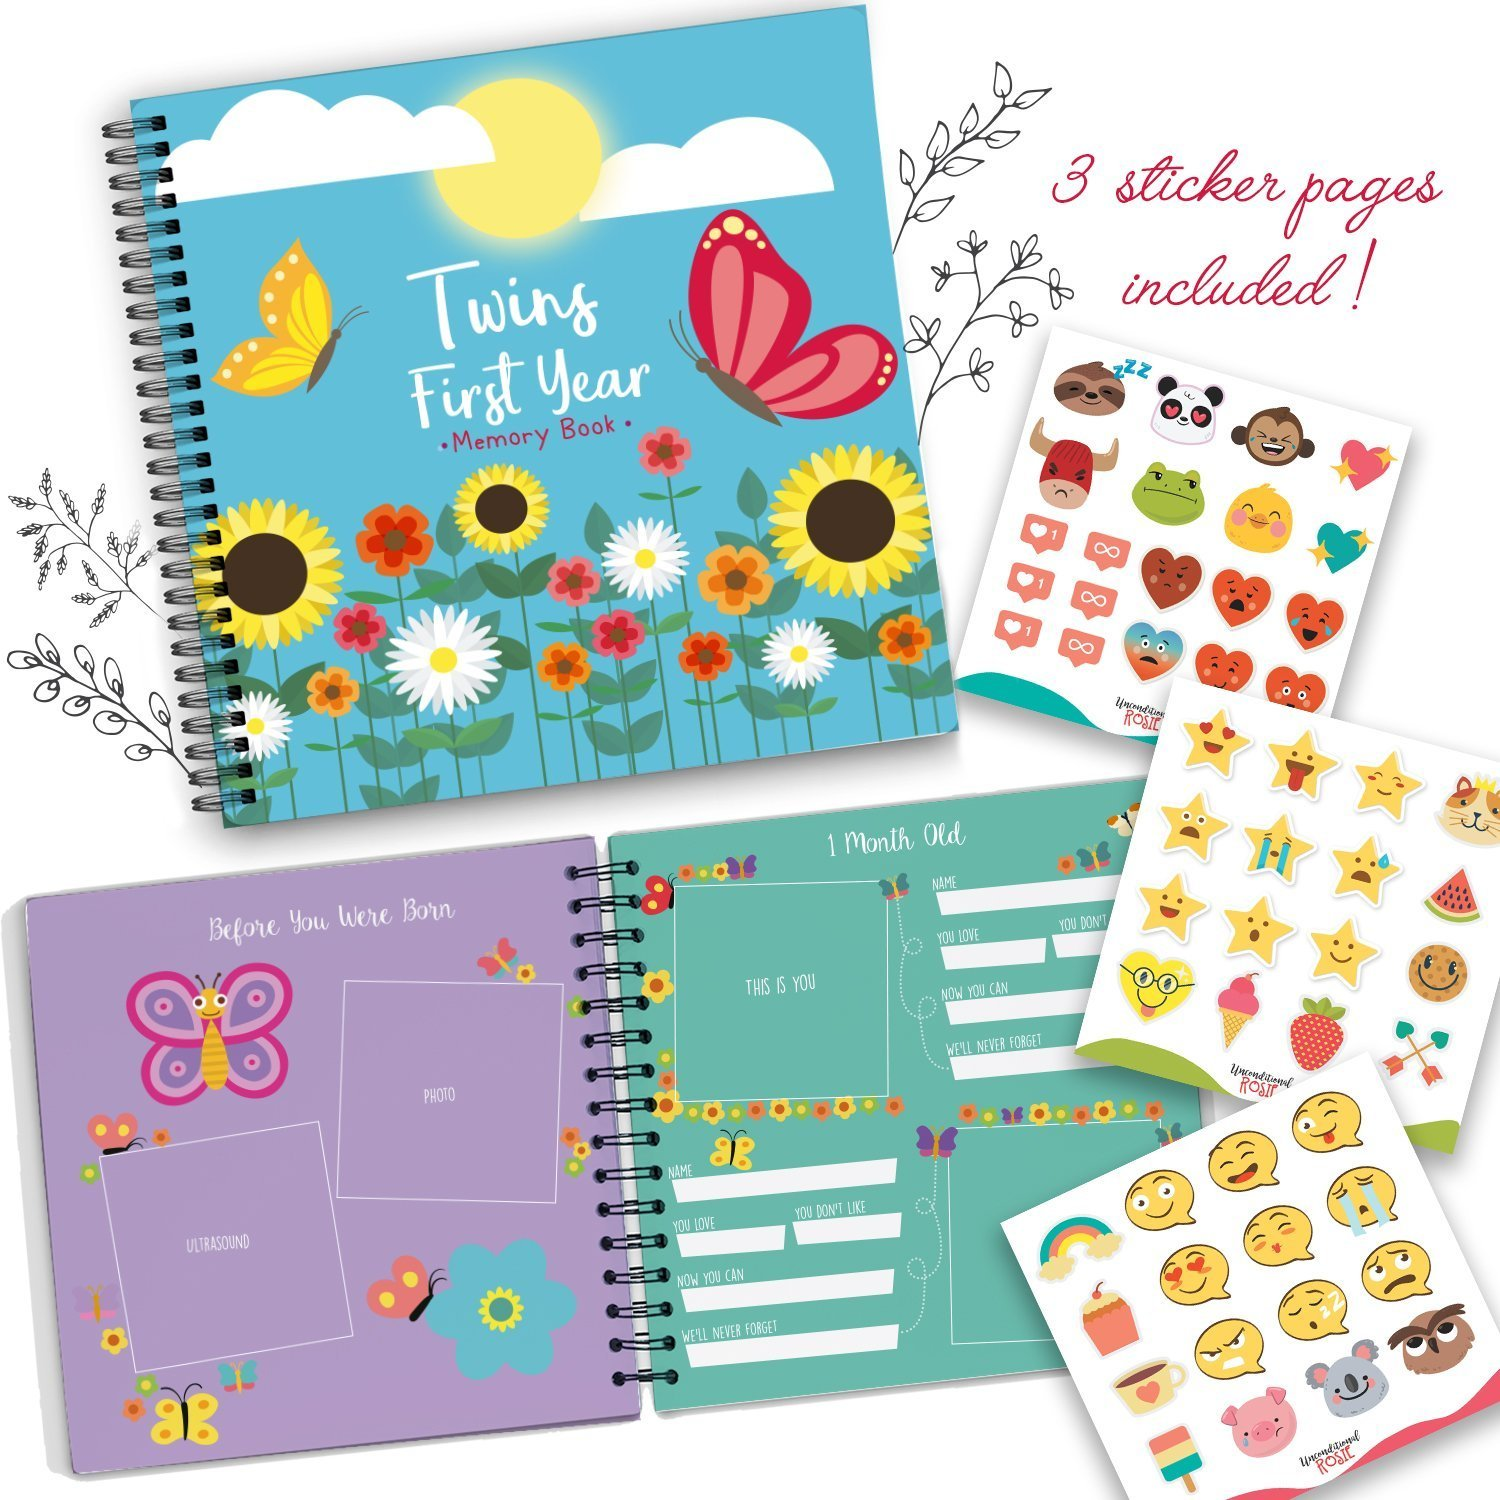 Baby Memory Book for Twins - The Only Baby Keepsake Journal for Documenting Your Twin's First Year! - Butterfly Edition